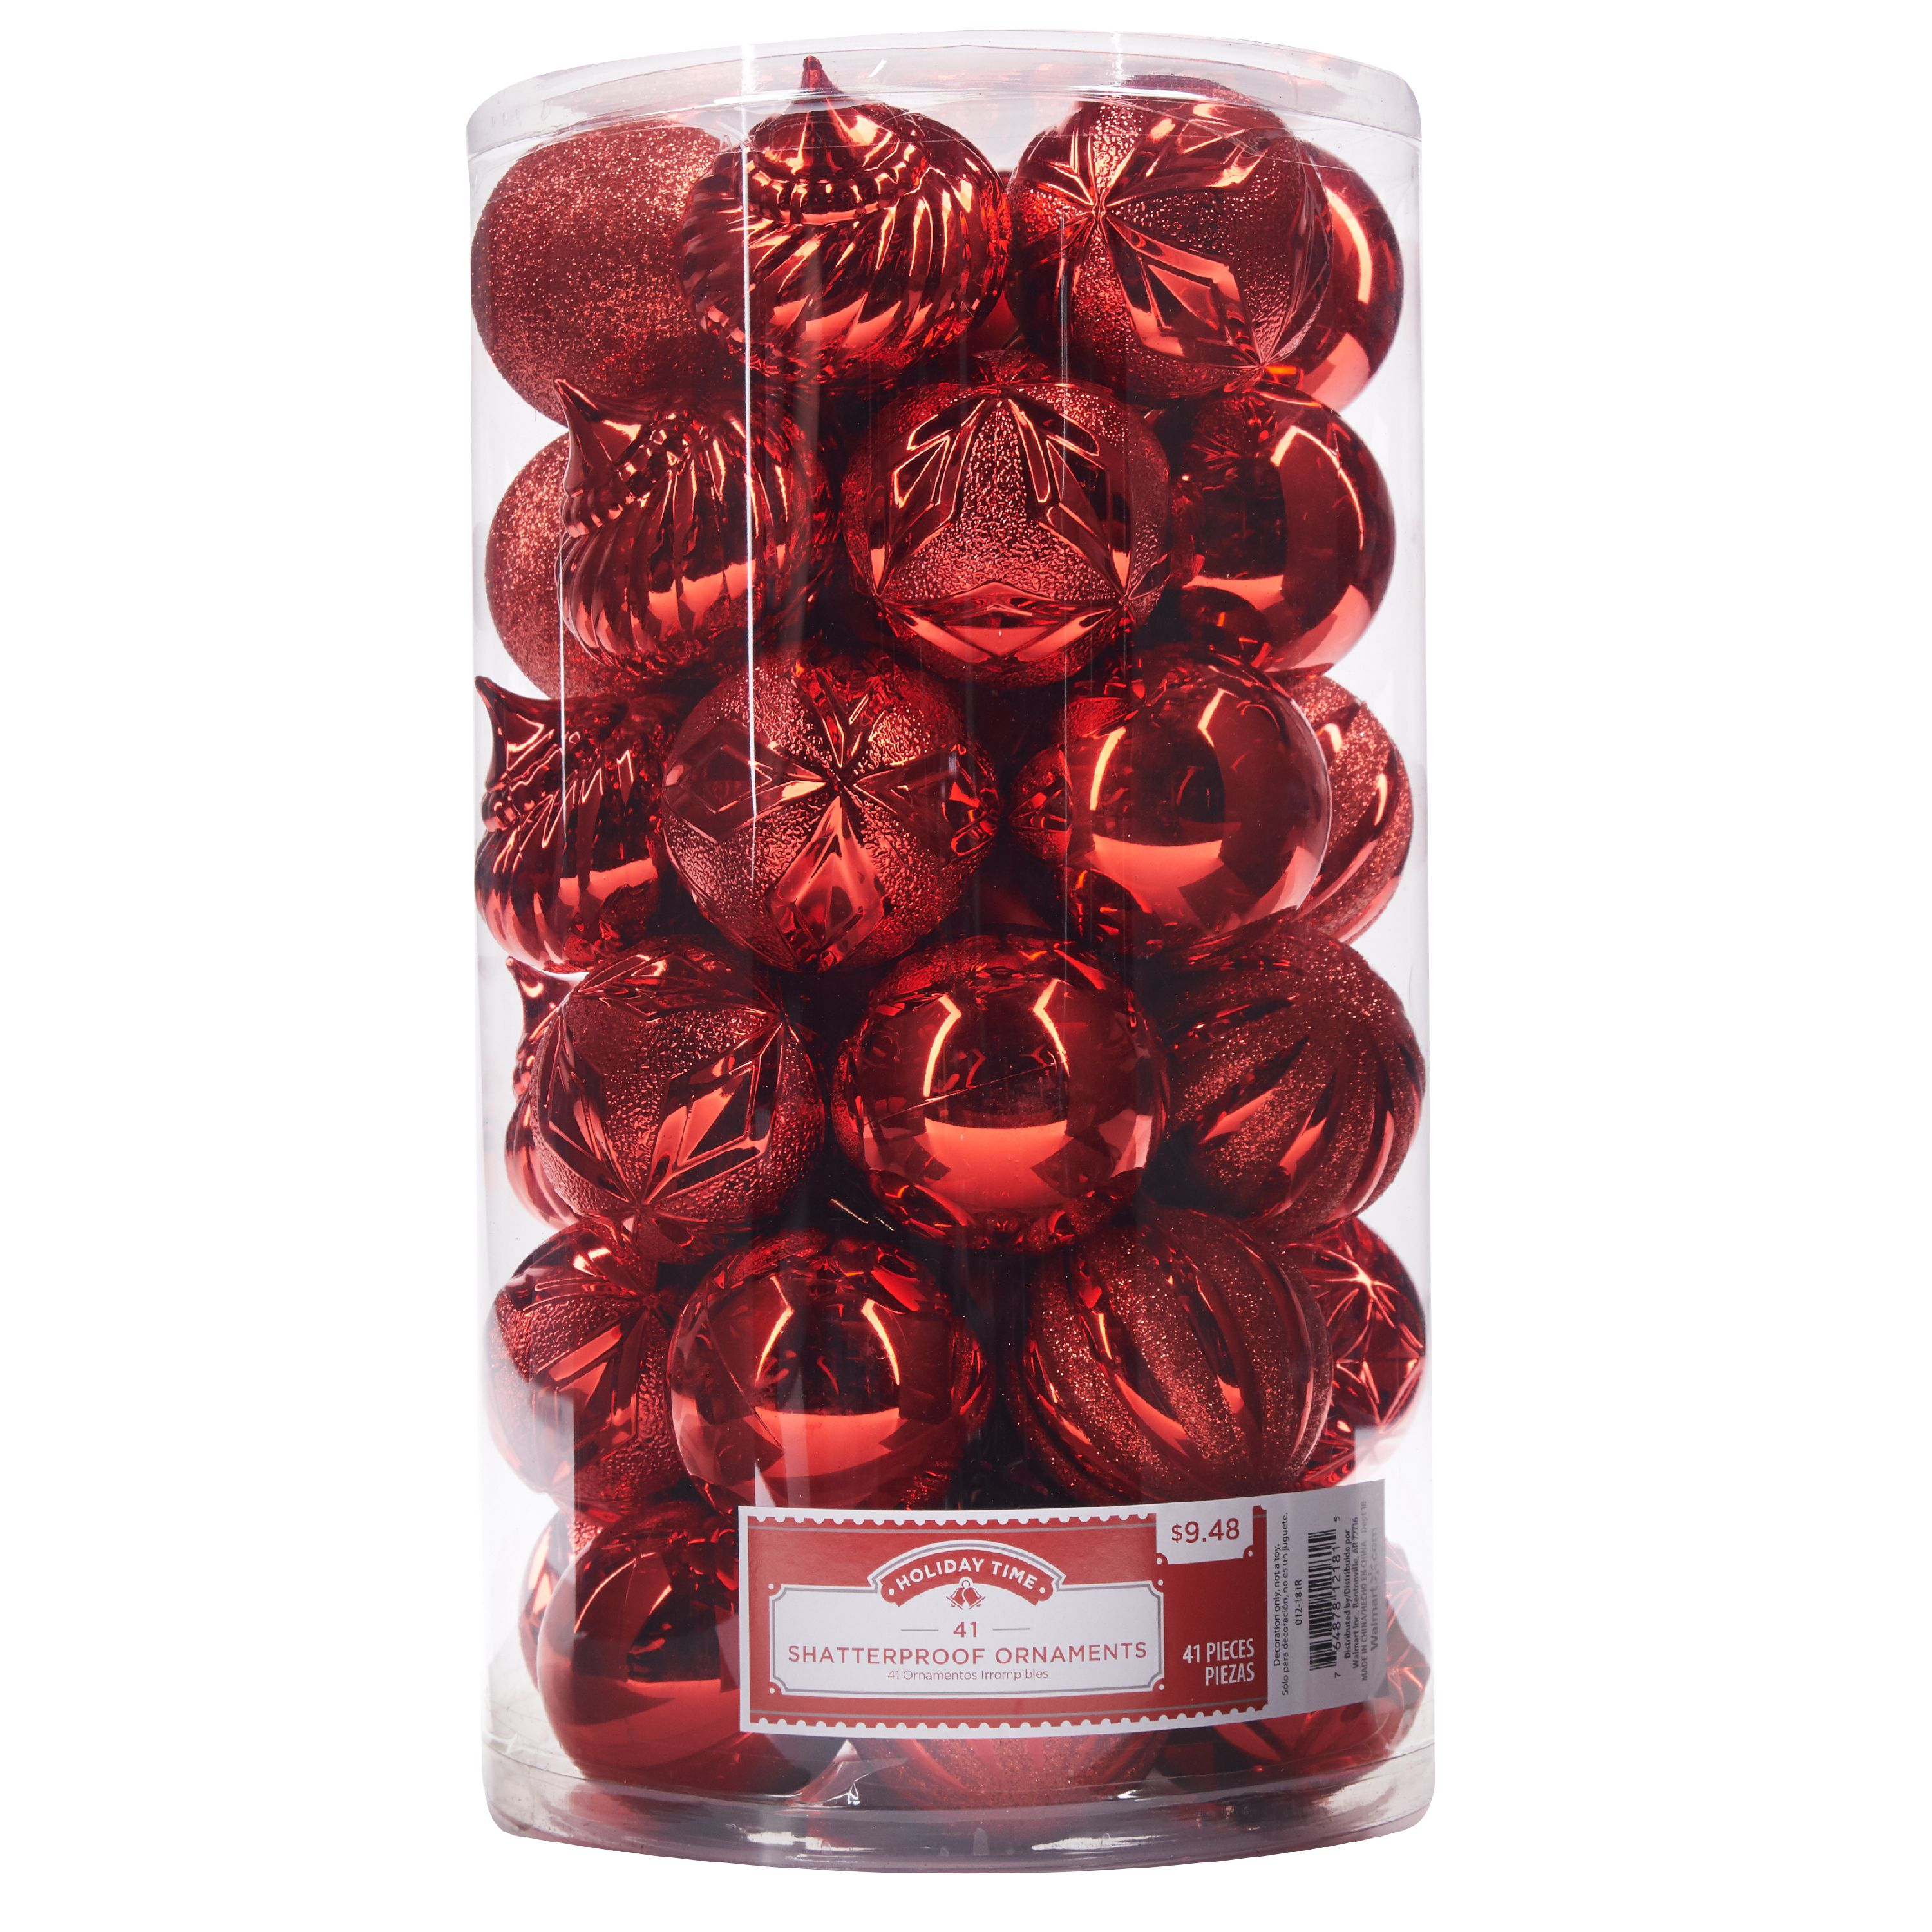 Holiday Time Shatterproof Ornaments, Red, 41 Count